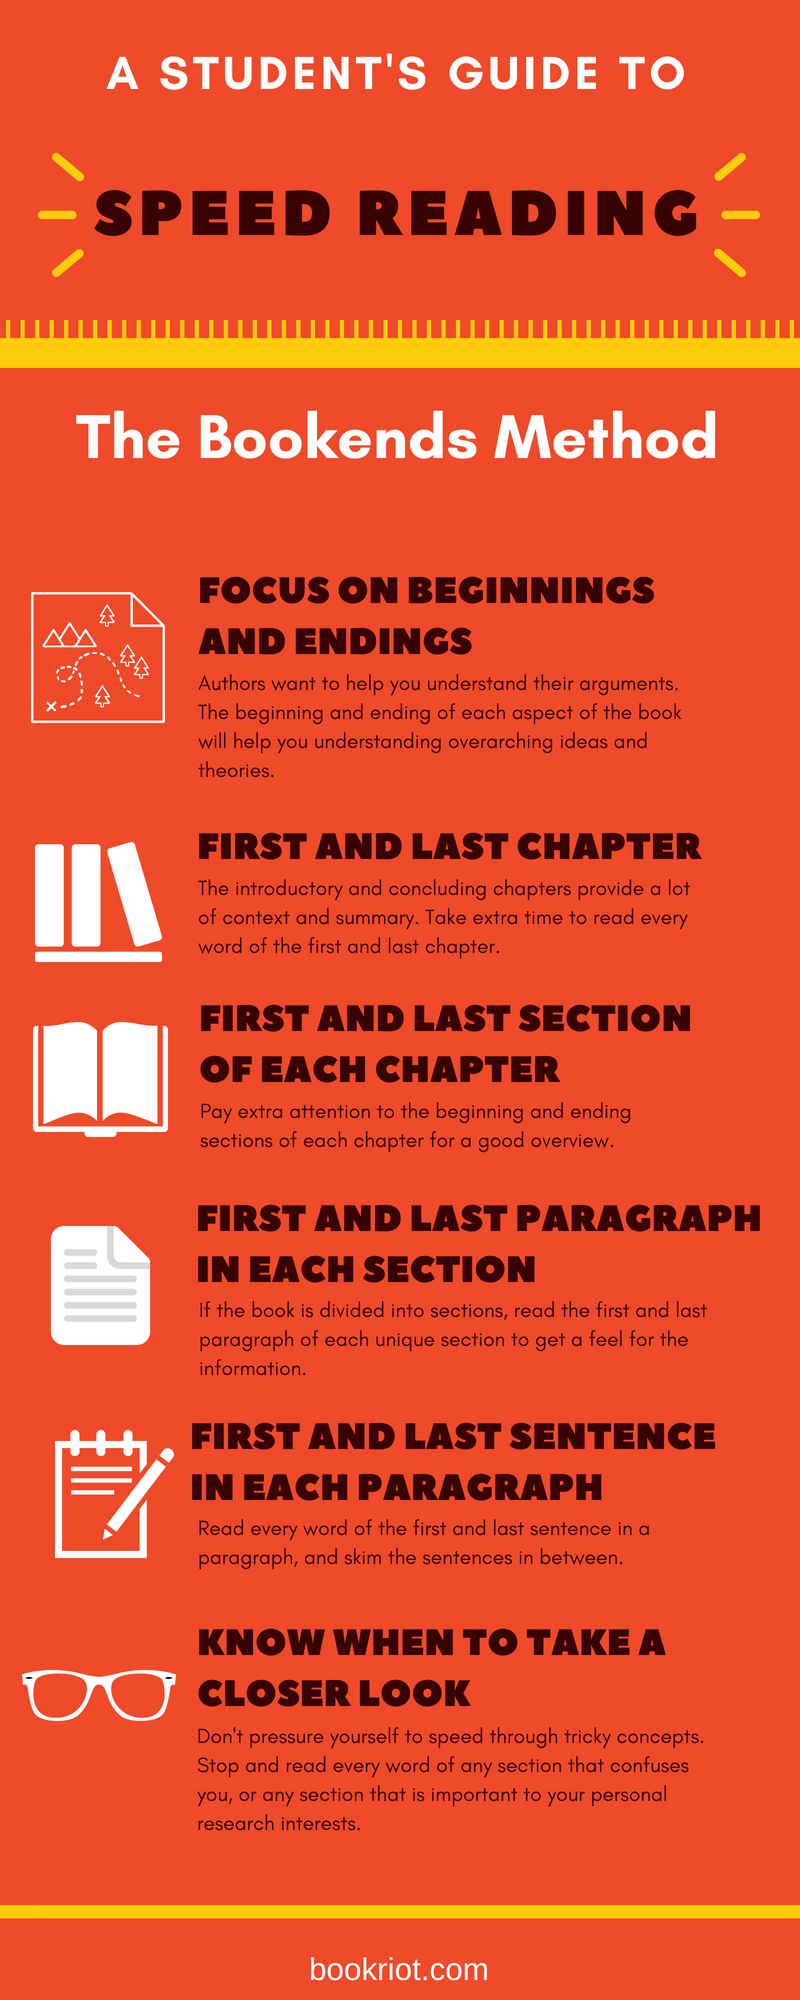 How to Read Faster: A Student's Guide to Speed Reading | Fun Ideas